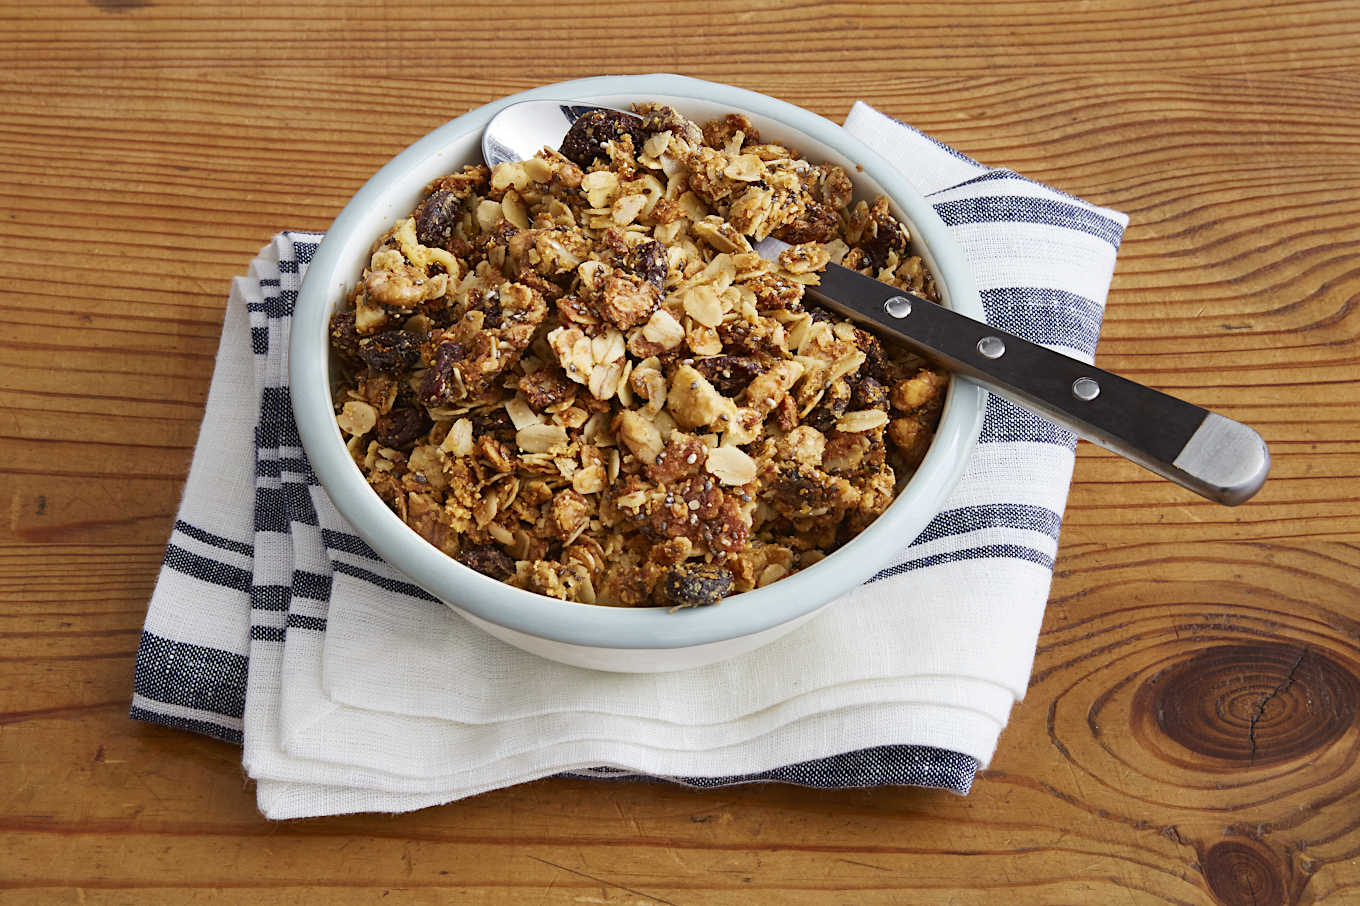 Is granola good for weight loss